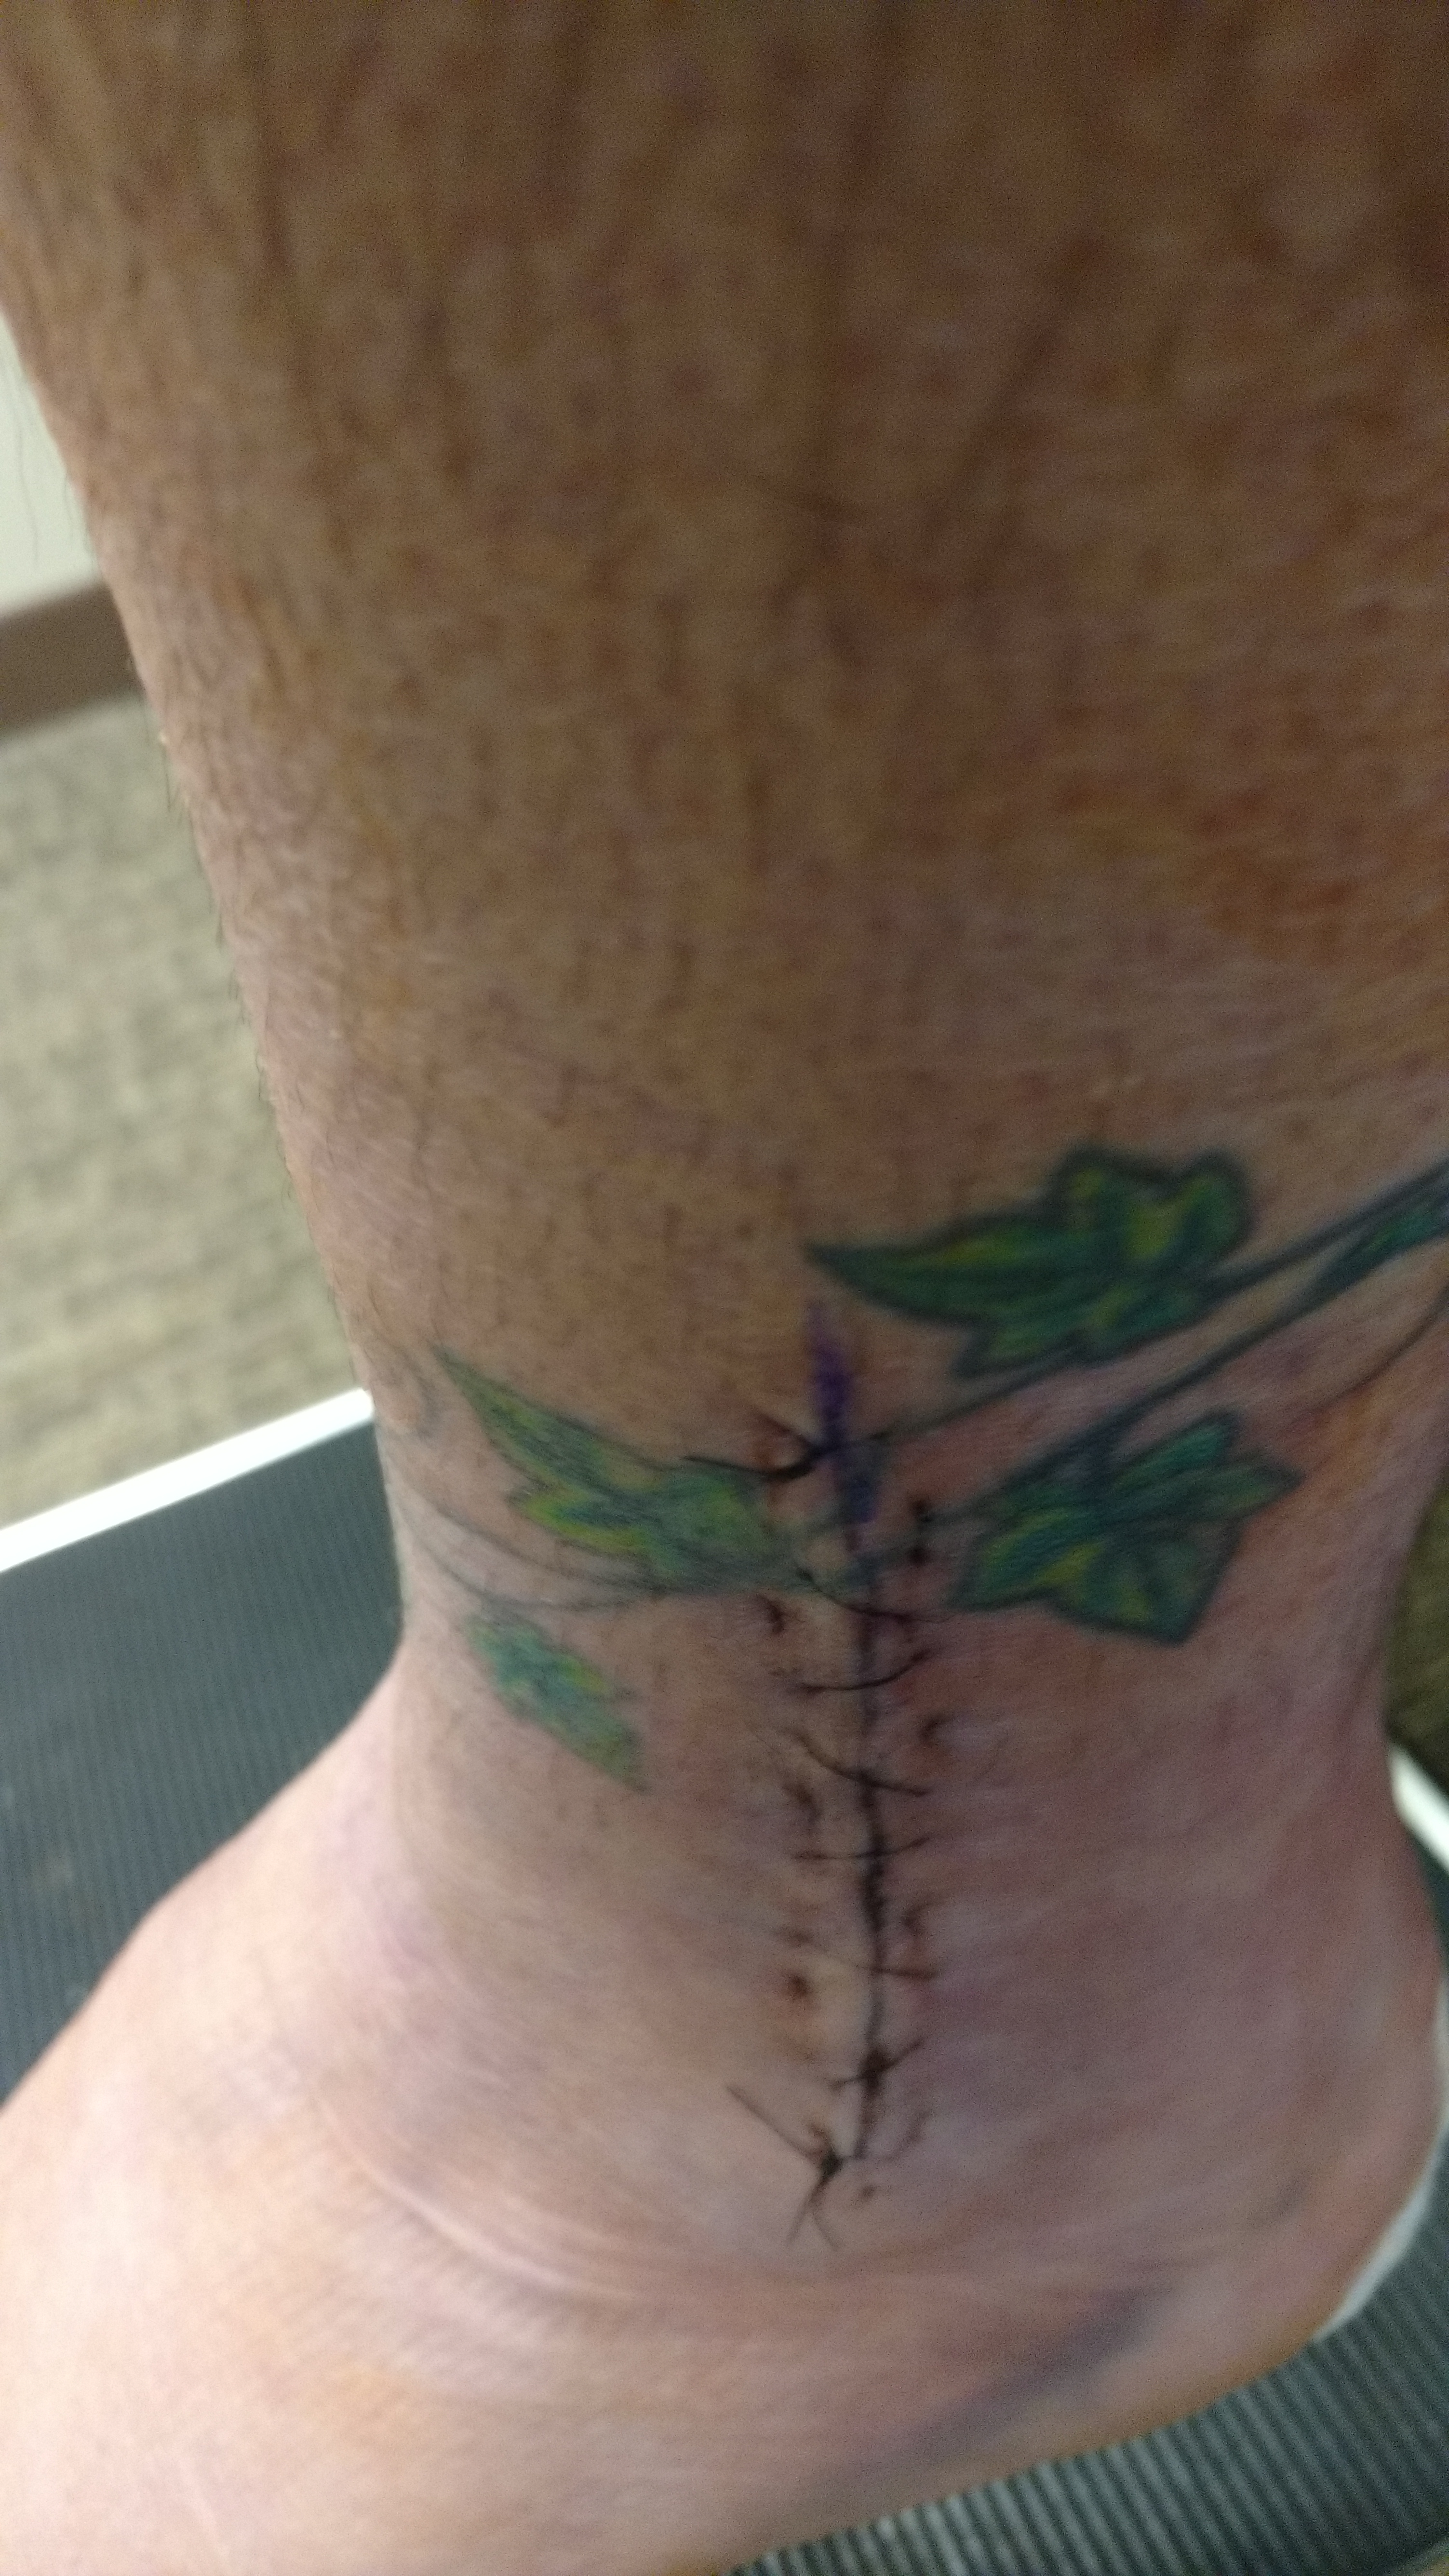 left ankle surgical site with stitches